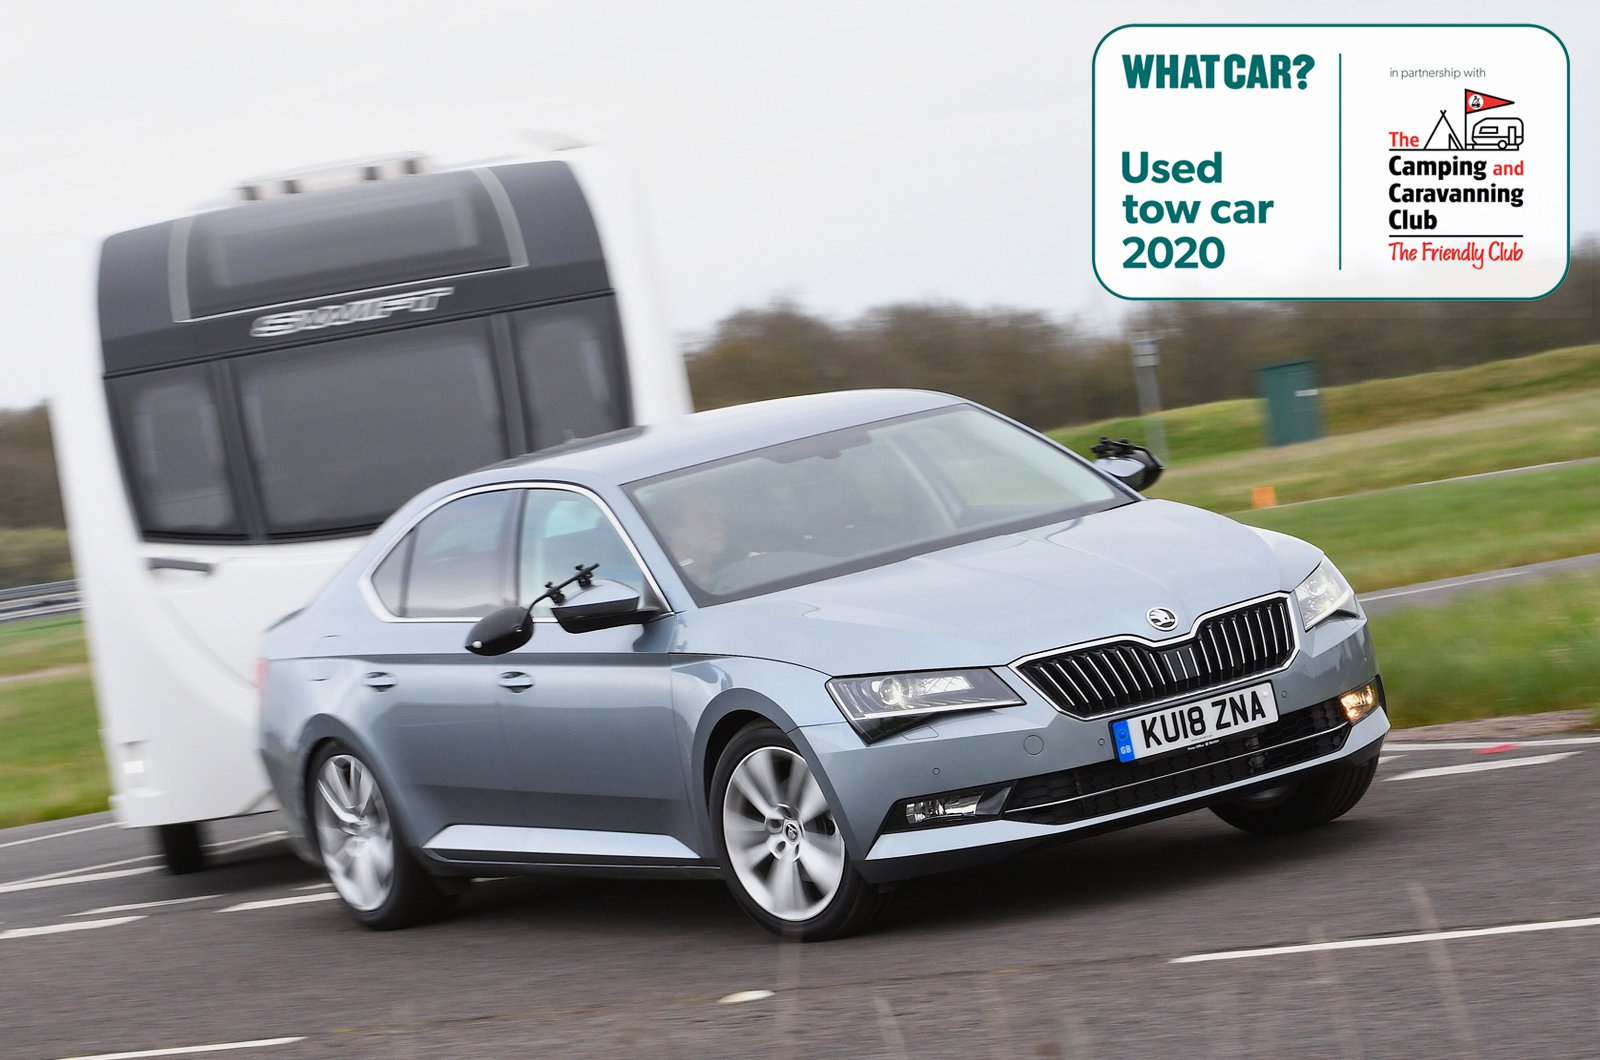 Used Tow Car - Skoda Superb